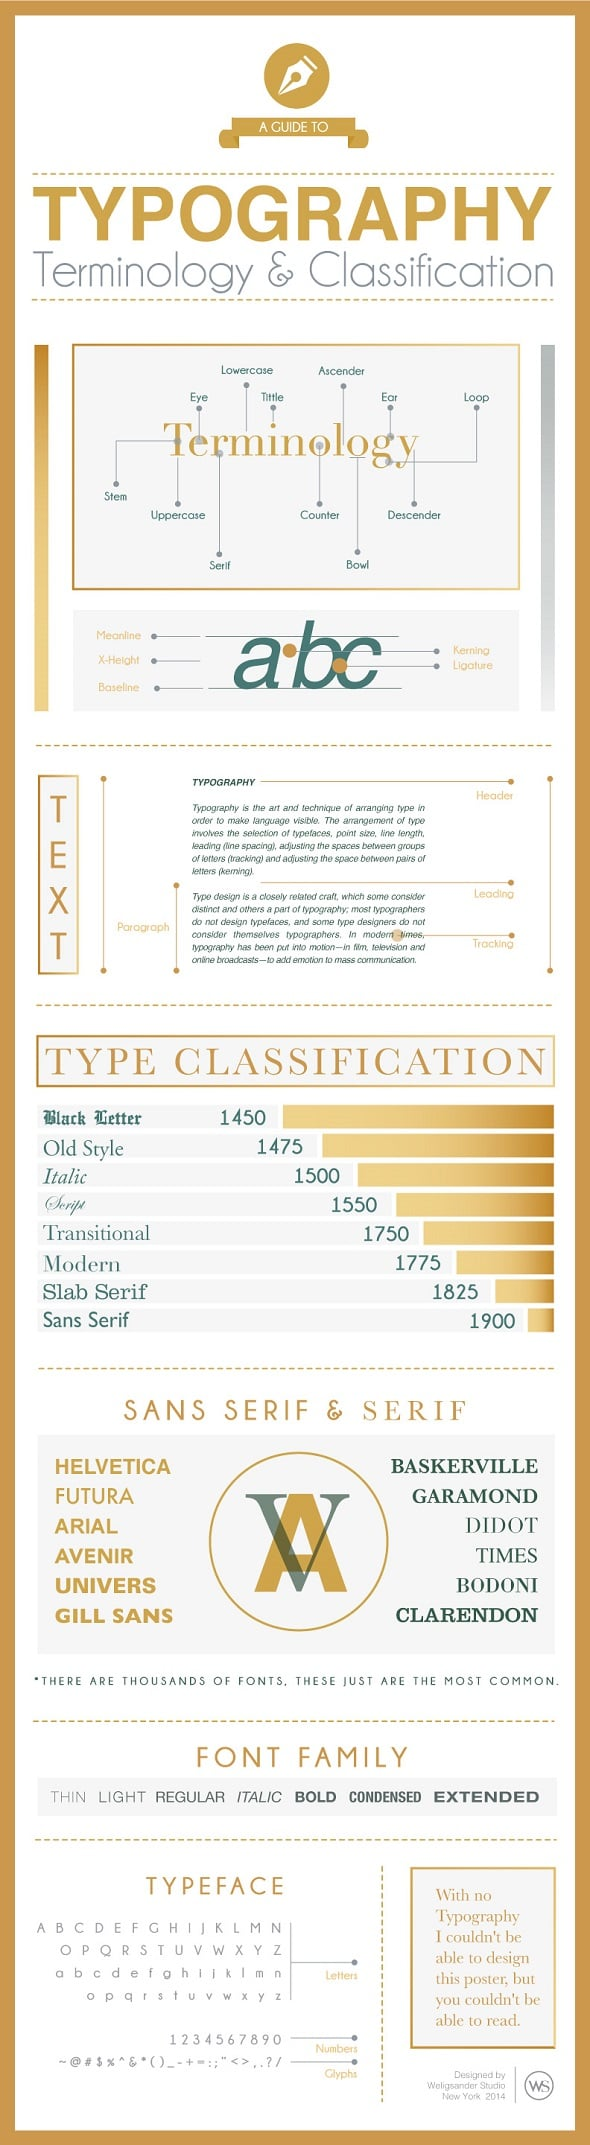 Learn Typography Terminology and Classification